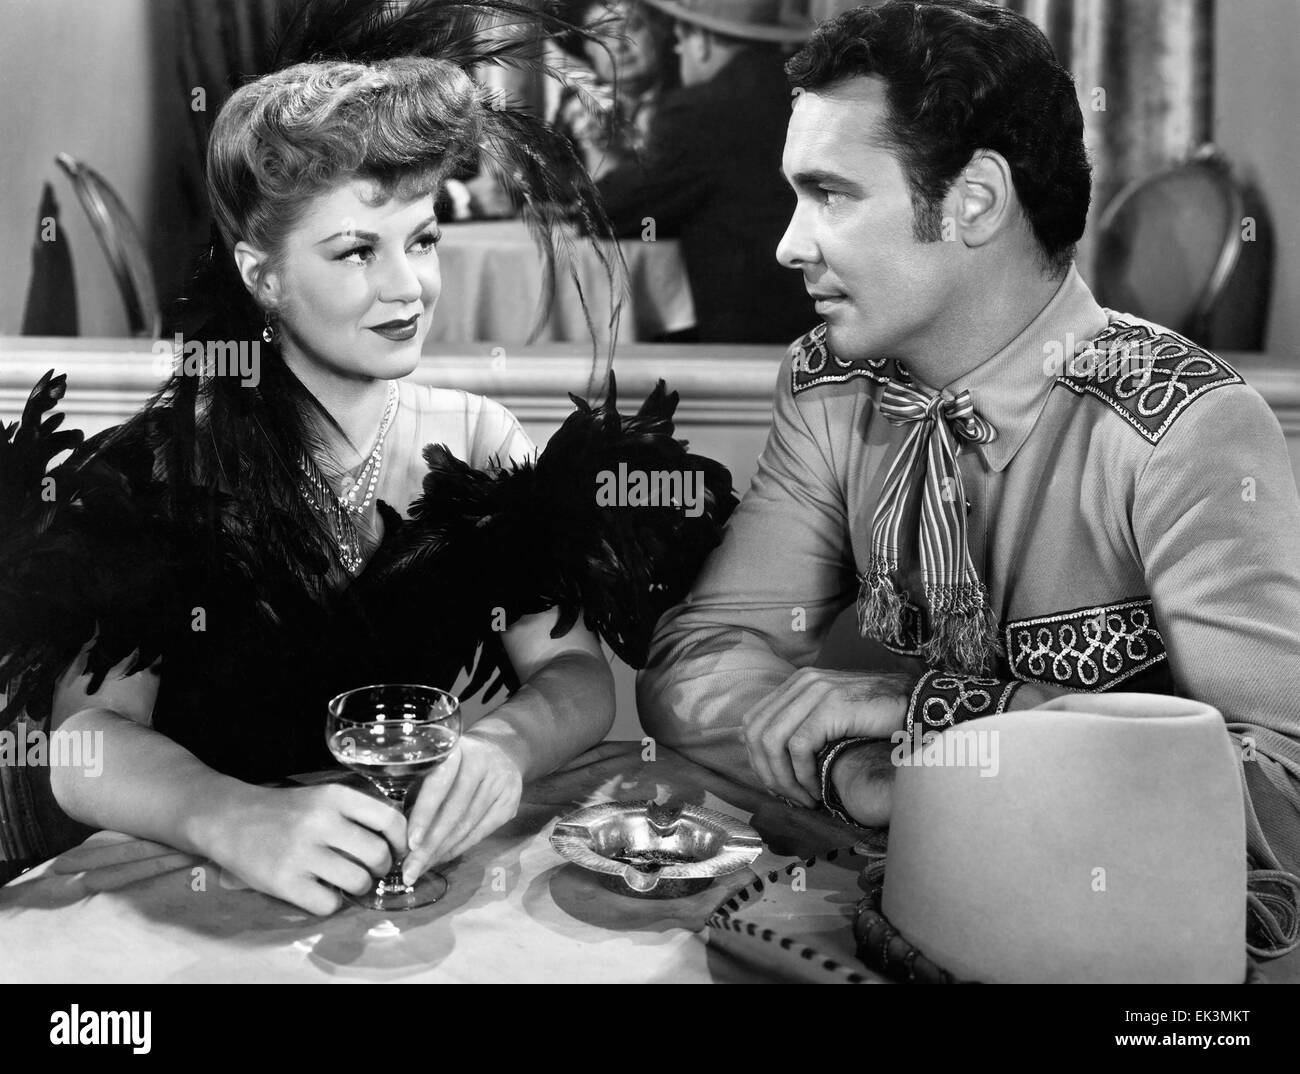 Claire Trevor, Barry Sullivan, on-set of the Film 'The Woman of the Town', 1943 - Stock Image